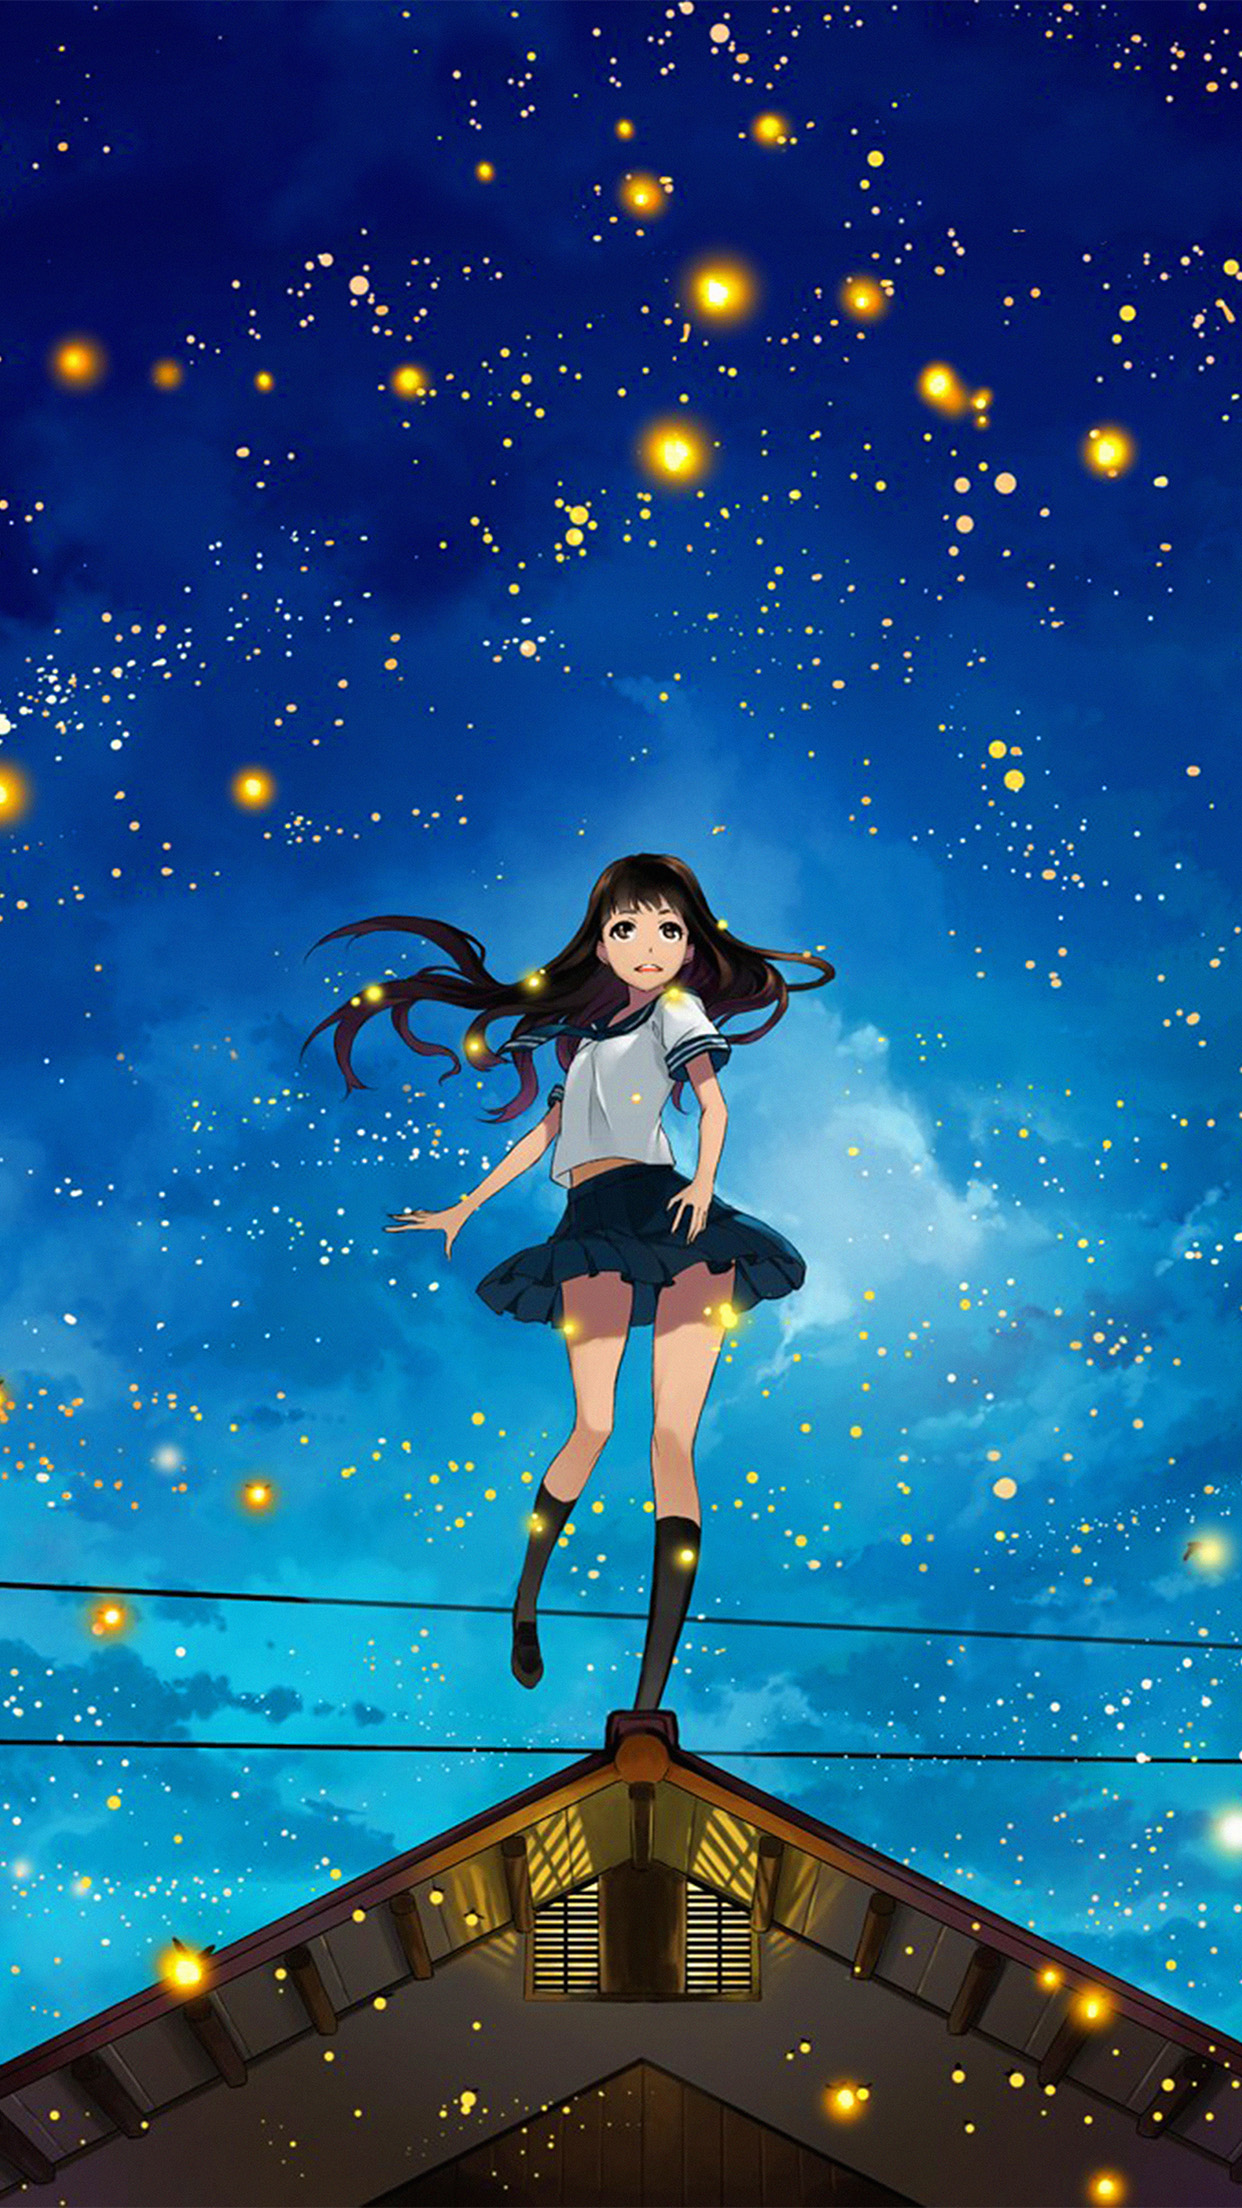 Girl anime star space night illustration art android - Best hd anime wallpapers for android ...